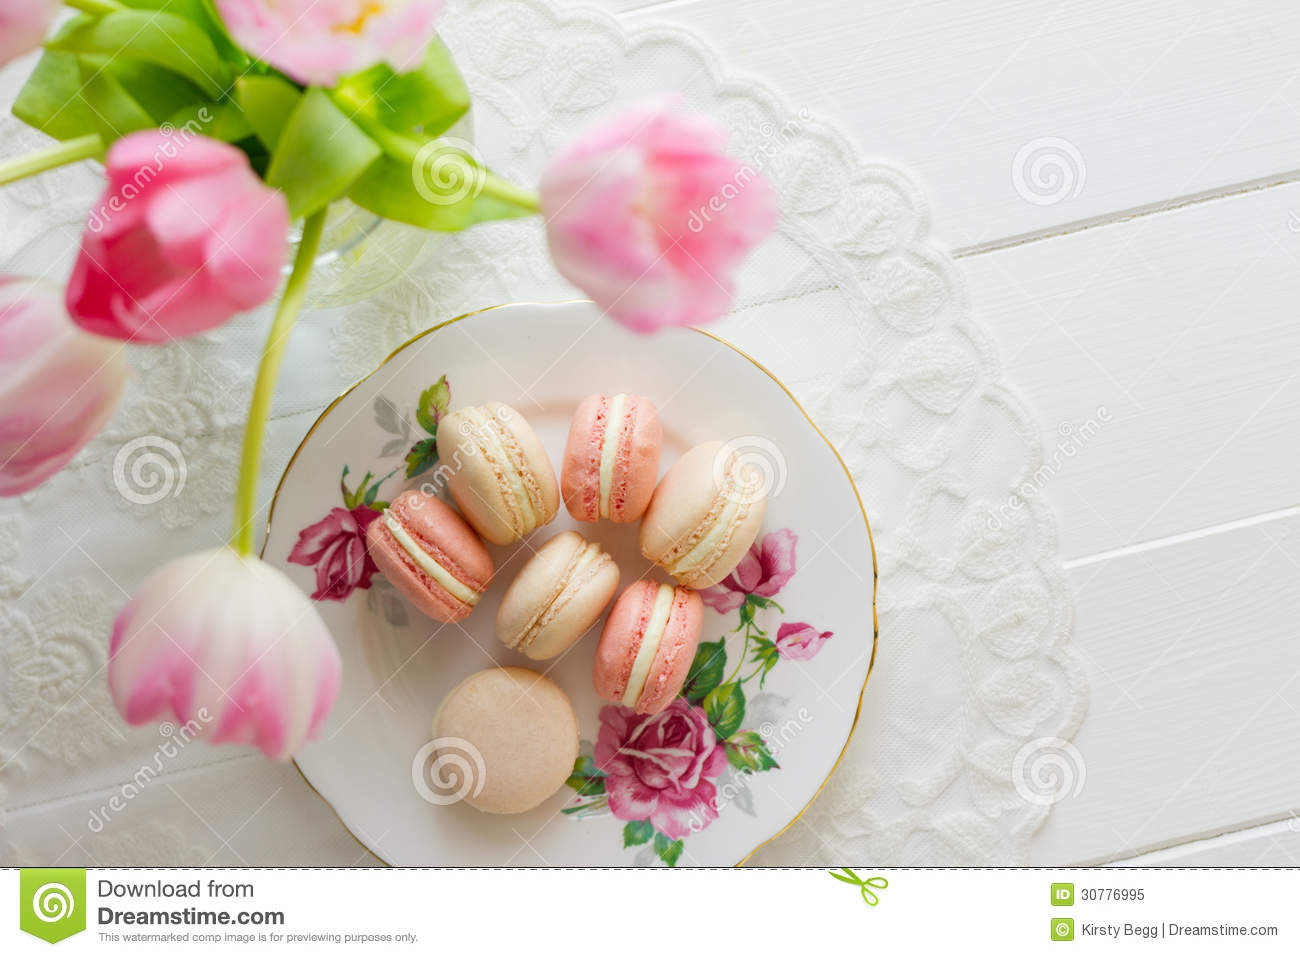 Macaron On A Porcelain Plate Royalty Free Stock Photo - Image ...